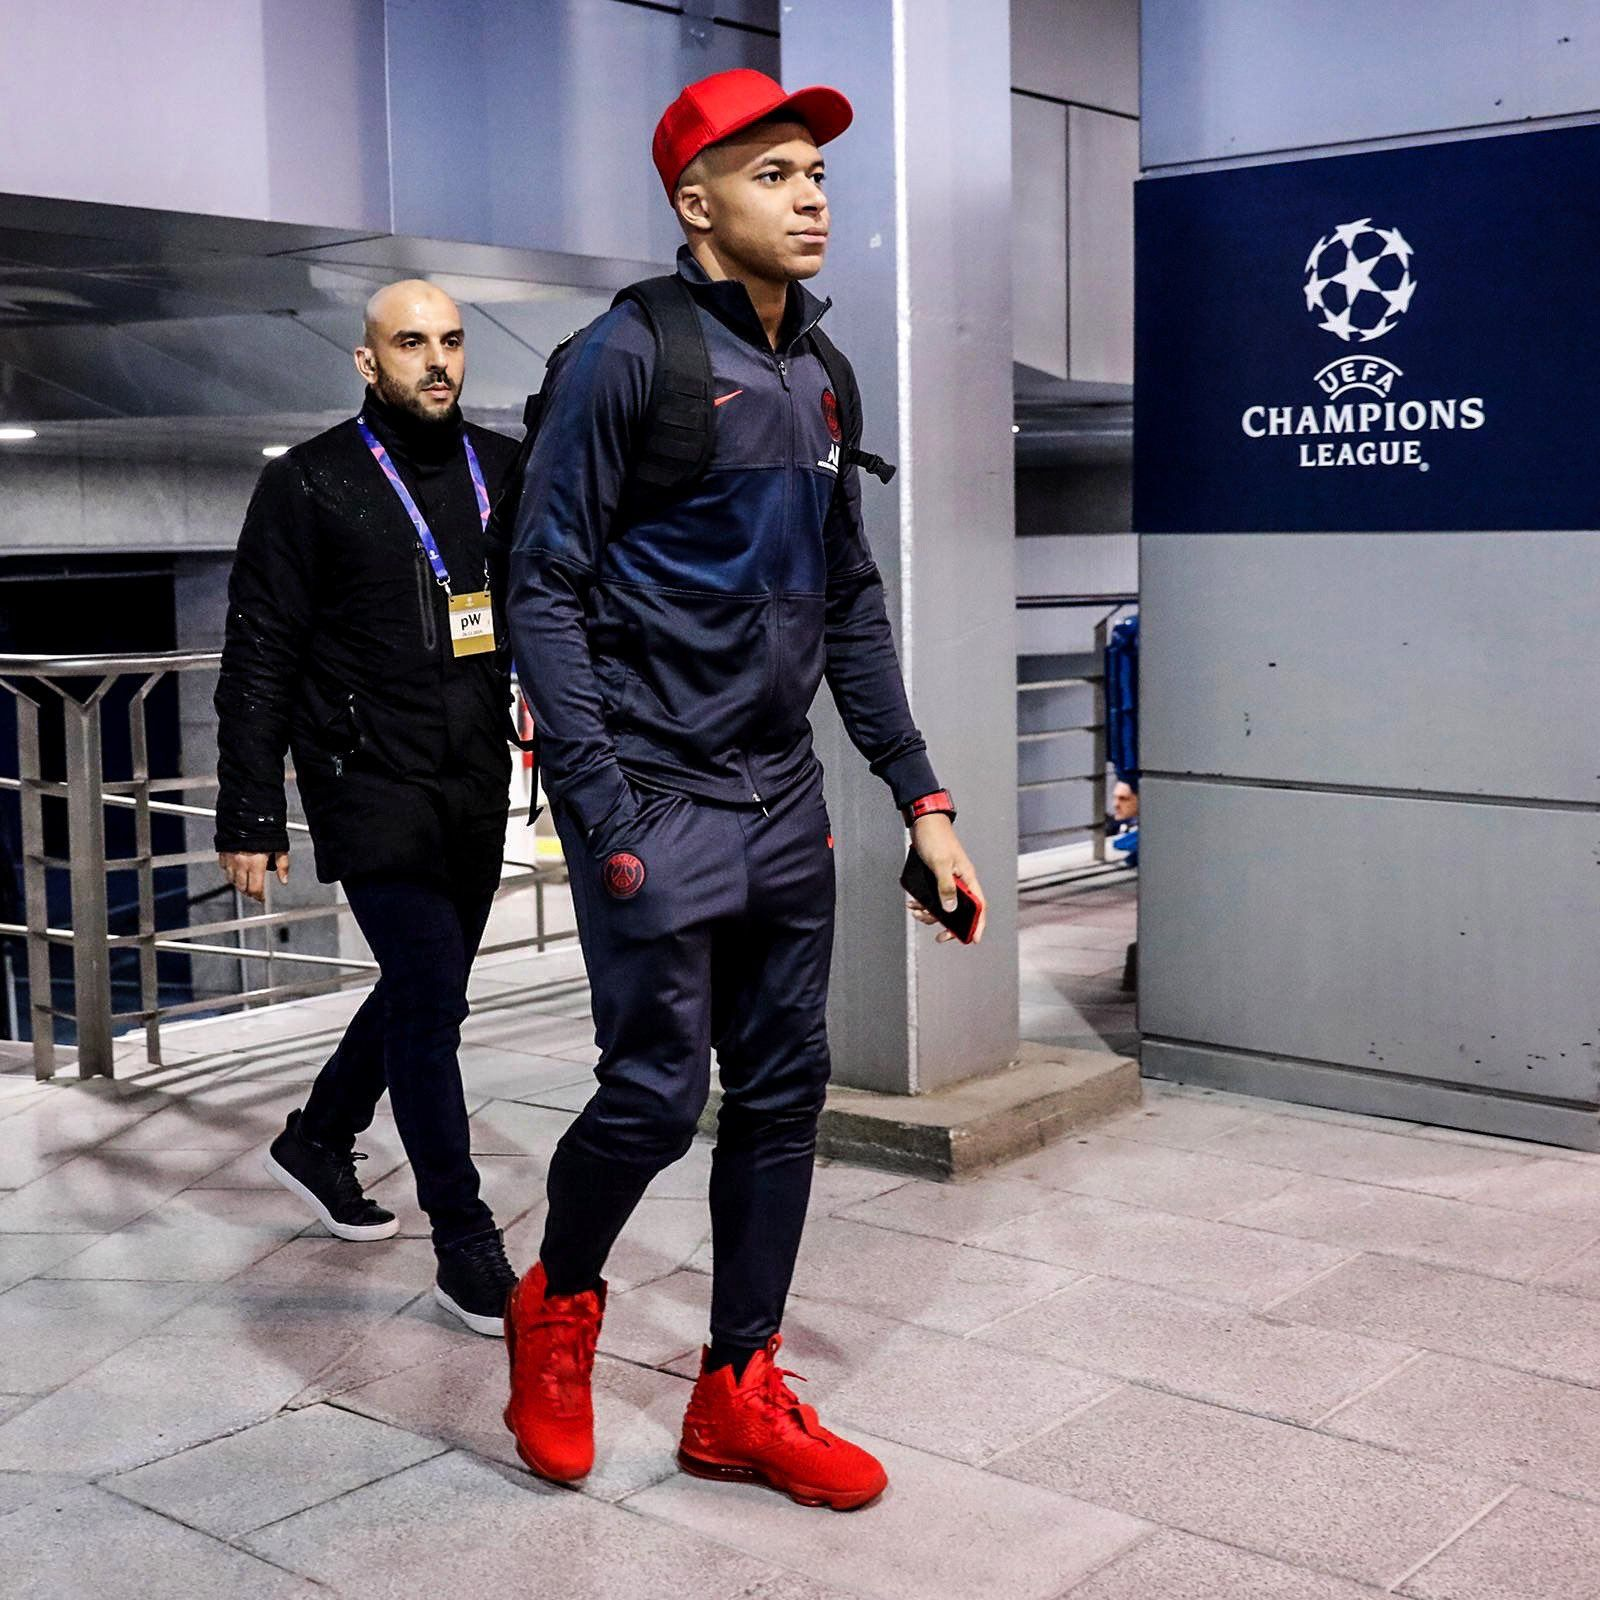 Kylian Mbappe On Twitter Psg Champions League Football Pictures